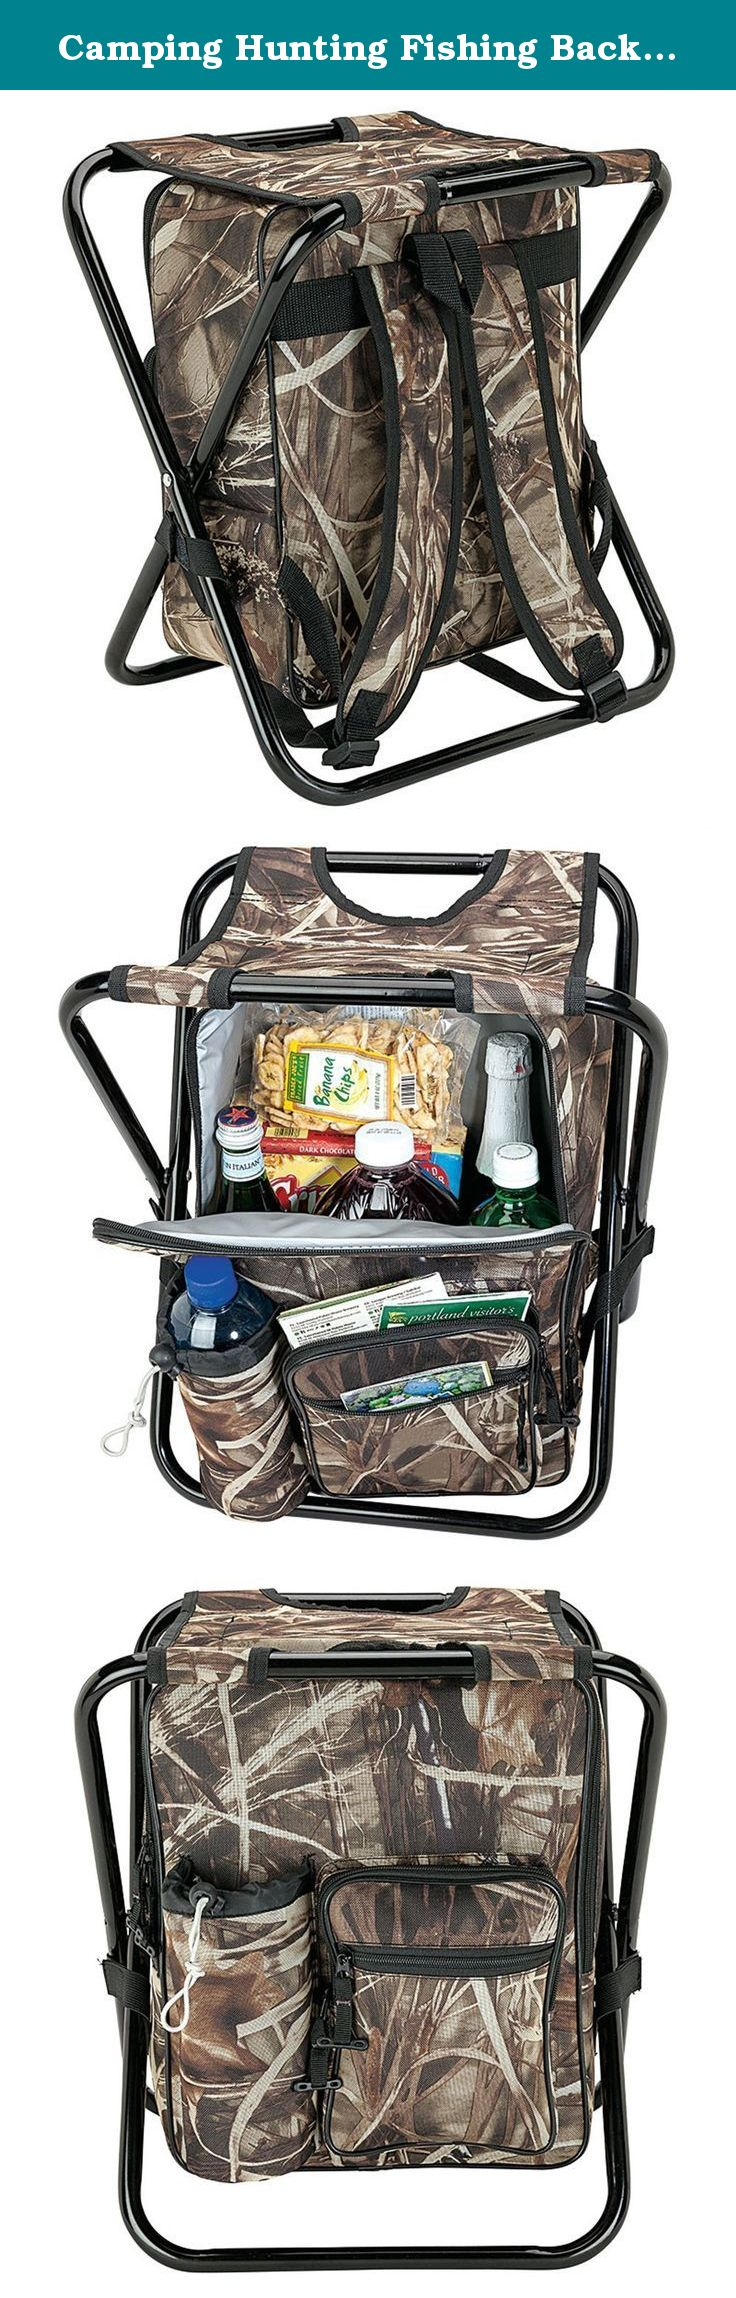 Camping Hunting Fishing Backpack Folding Stool with Cooler